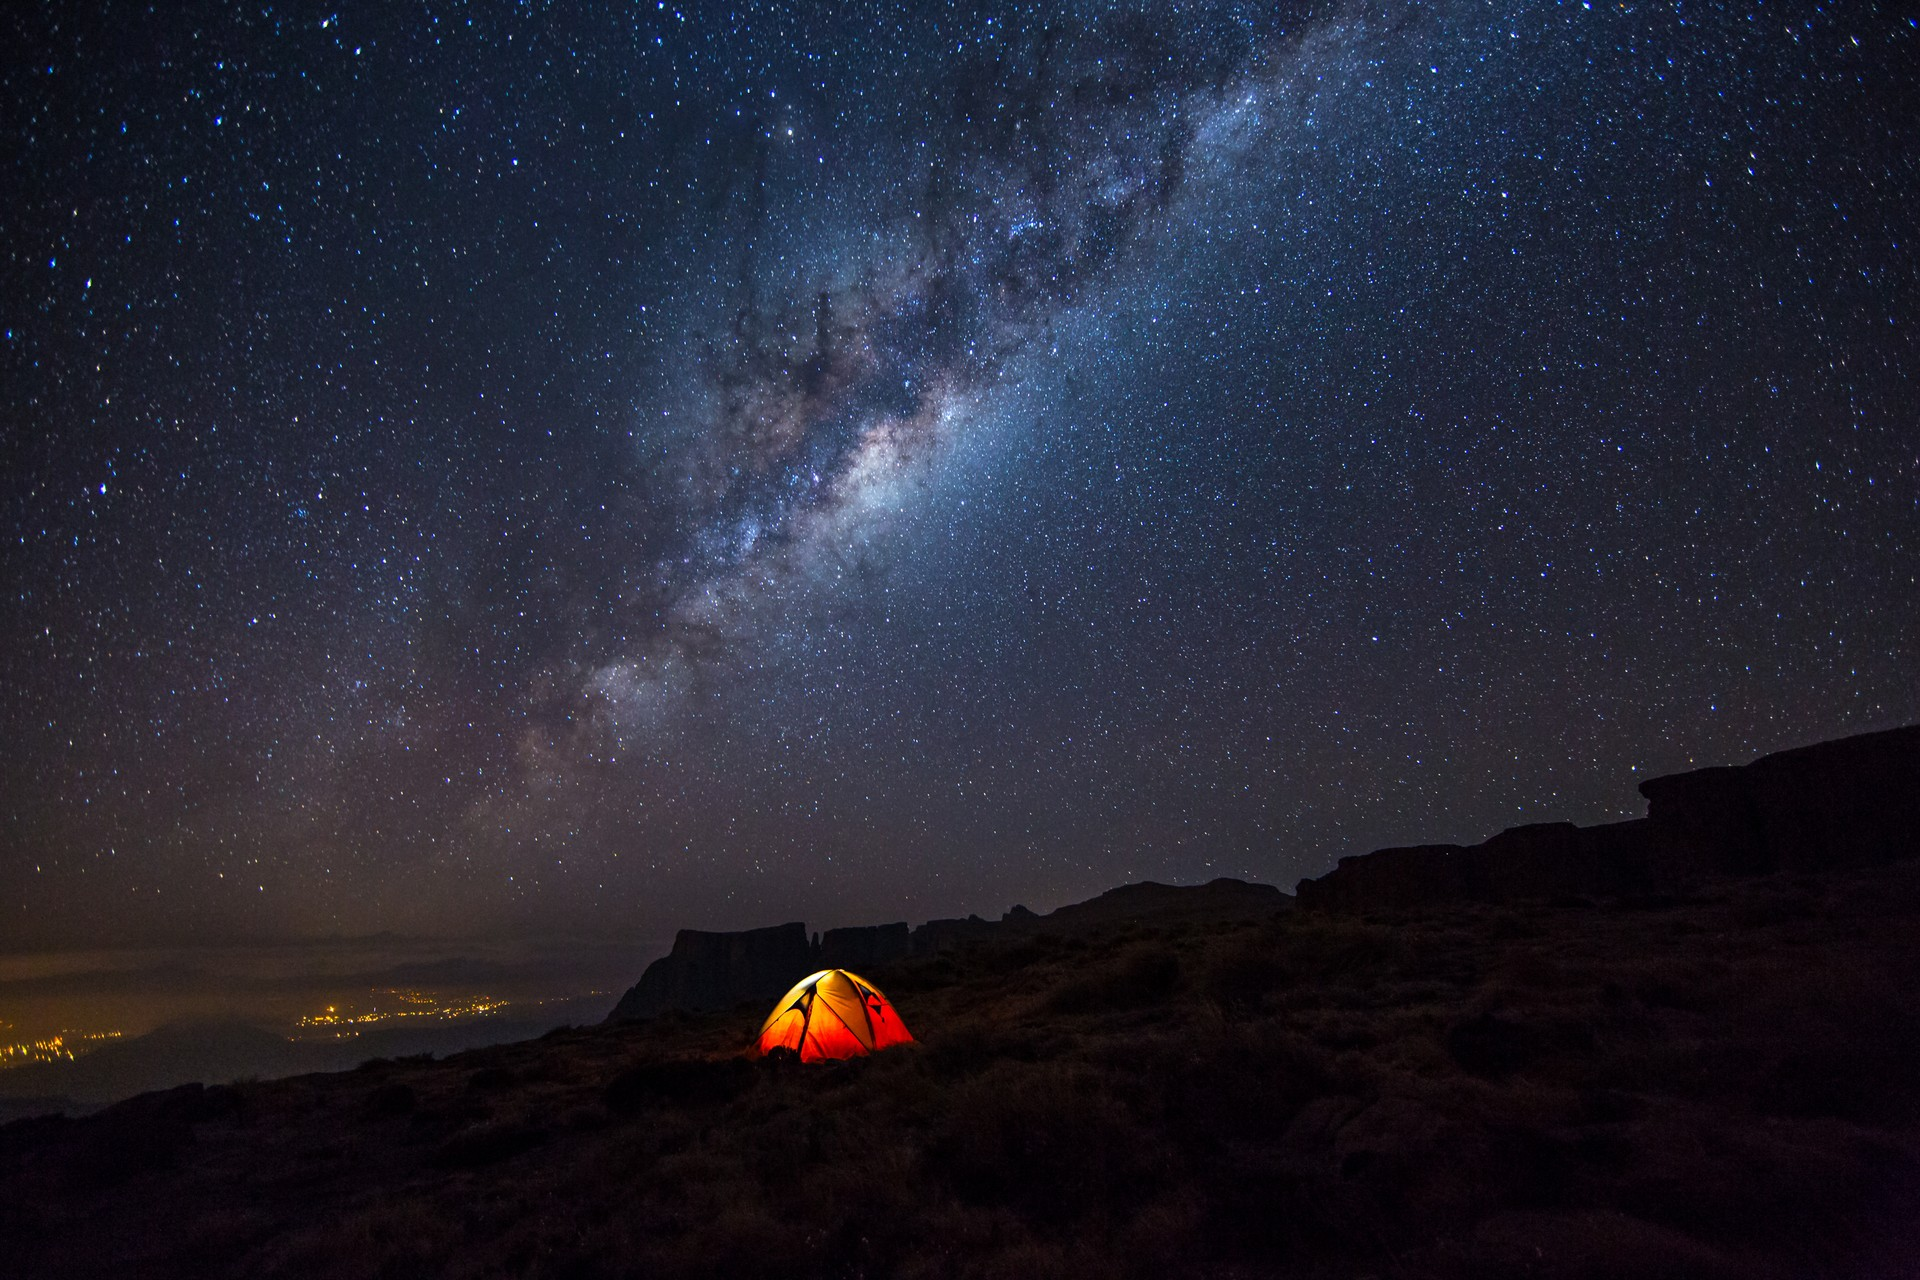 Camping on the Amphitheatre, Drakensberg, South Africa